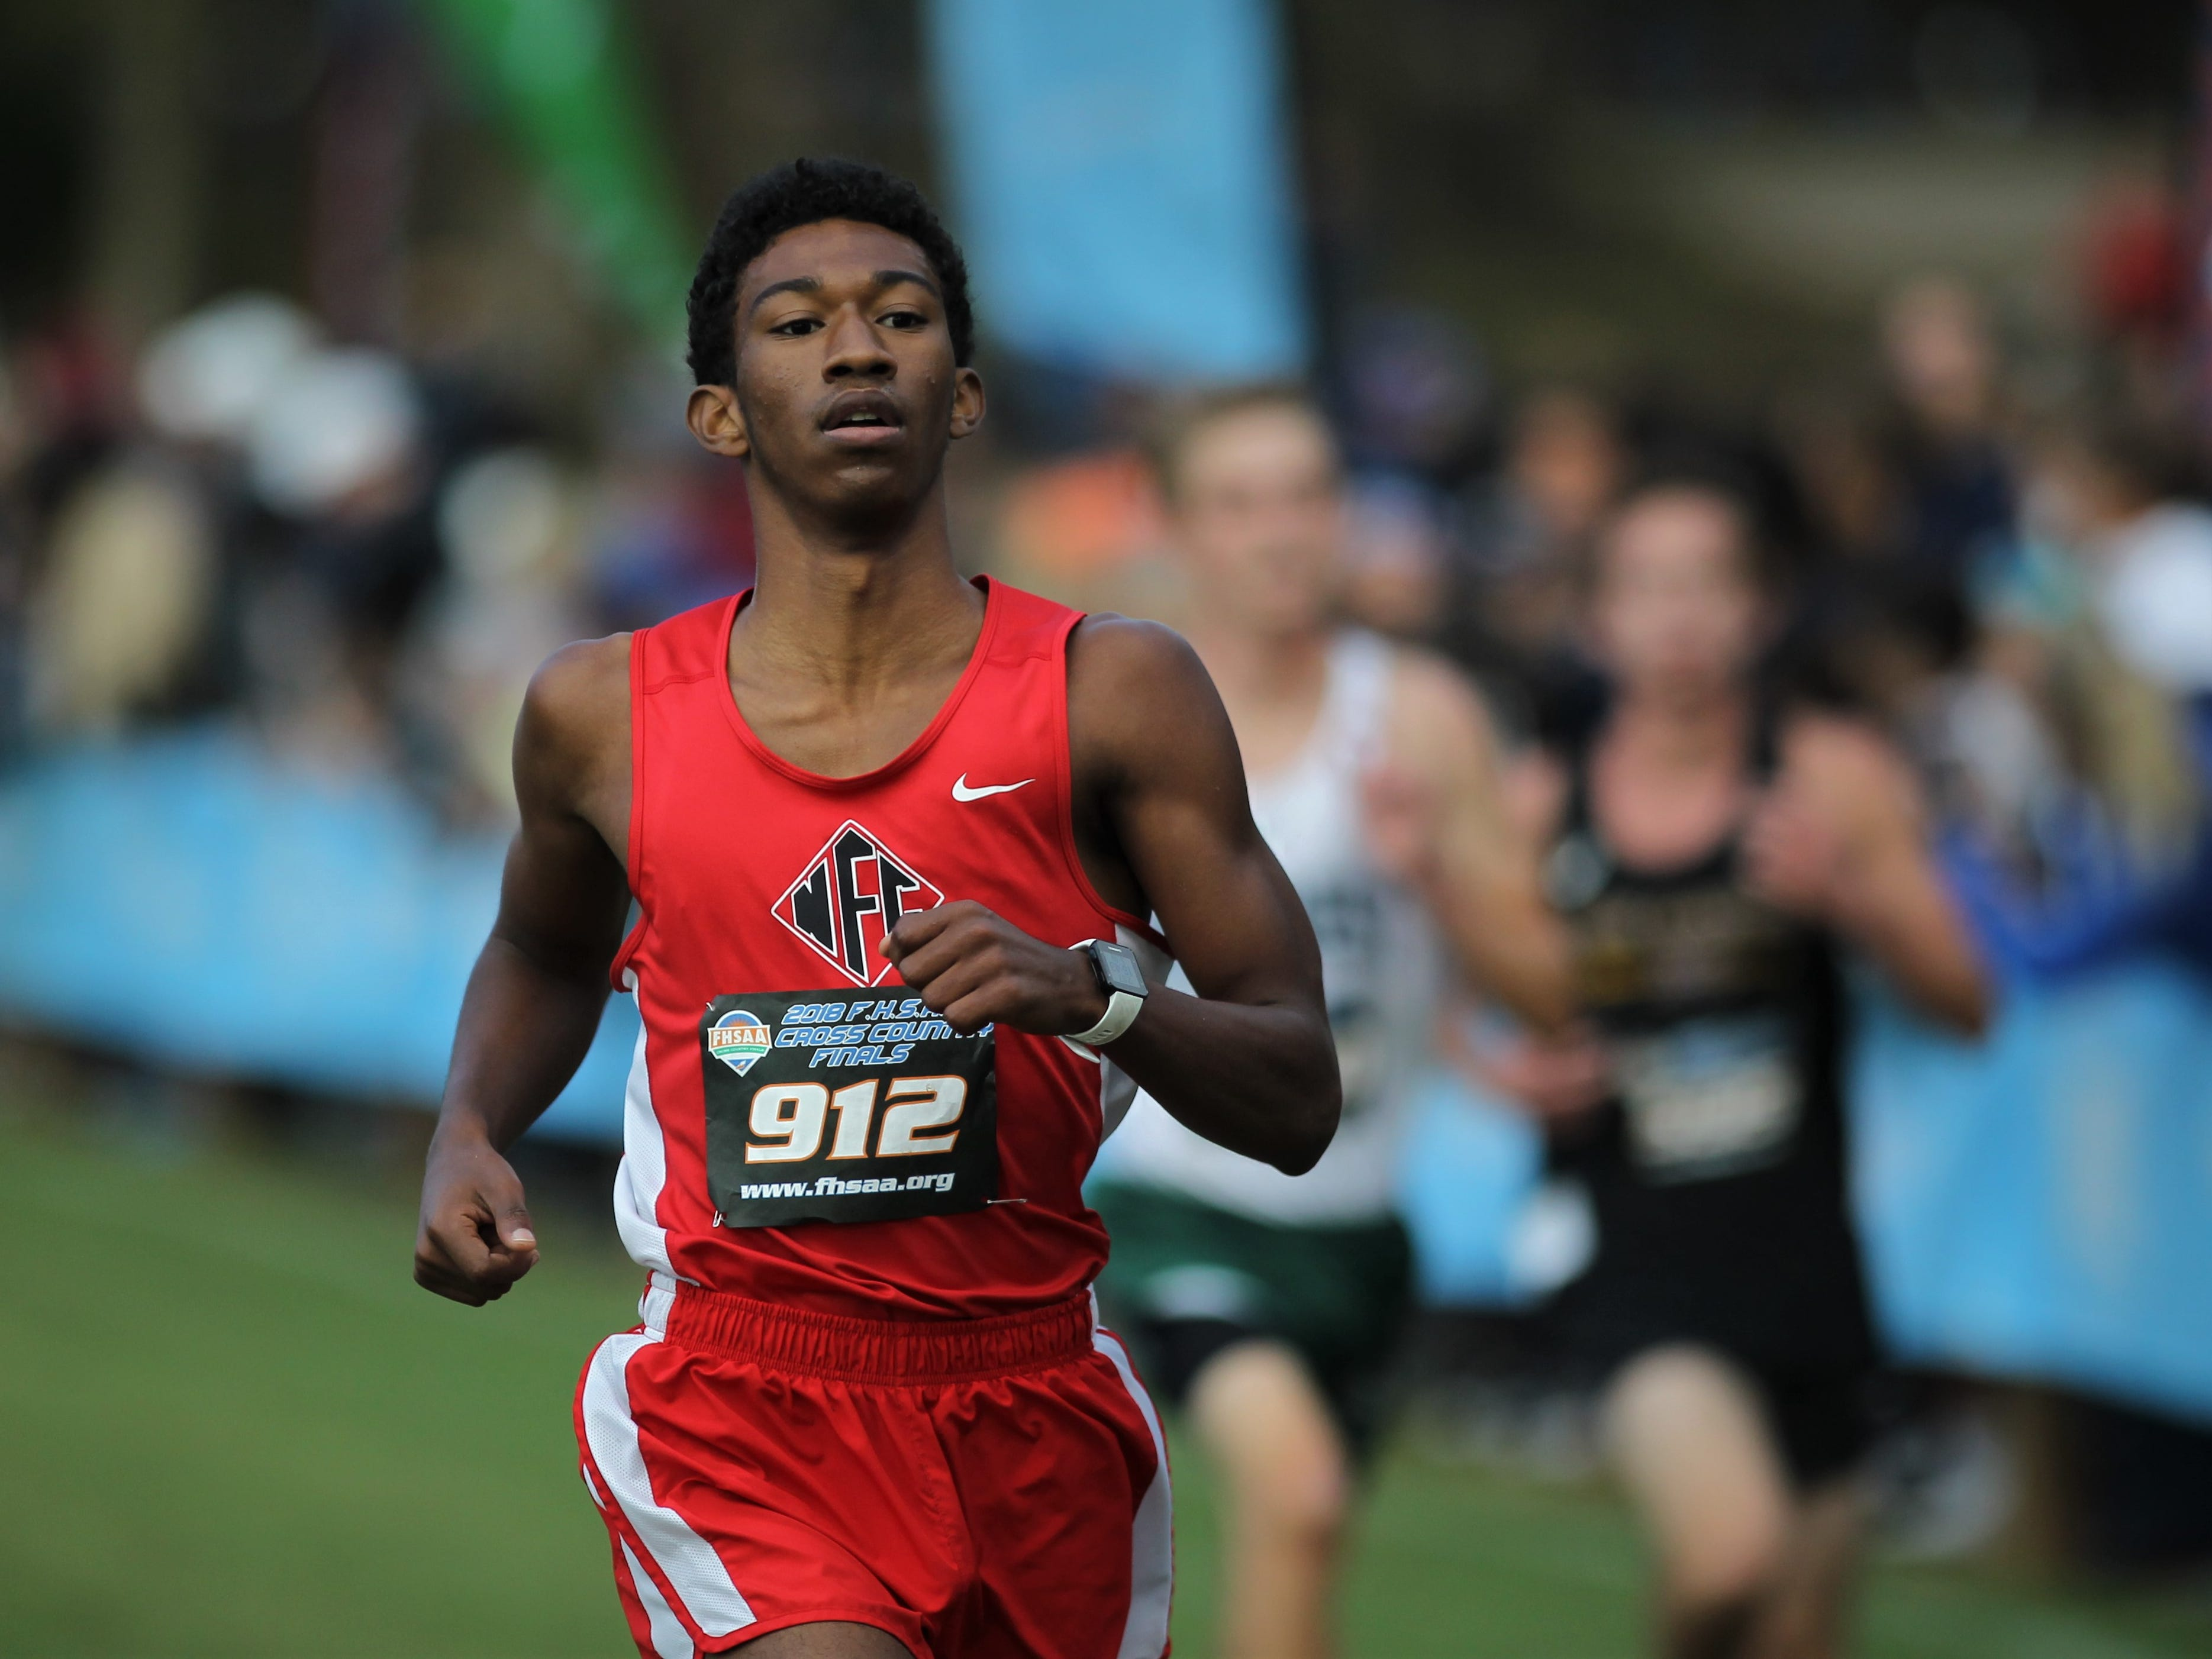 North Florida Christian junior David Keen races to the finish of the Class 1A boys race in the FHSAA Cross Country State Championships at Apalachee Regional Park on Saturday, Nov. 10, 2018.